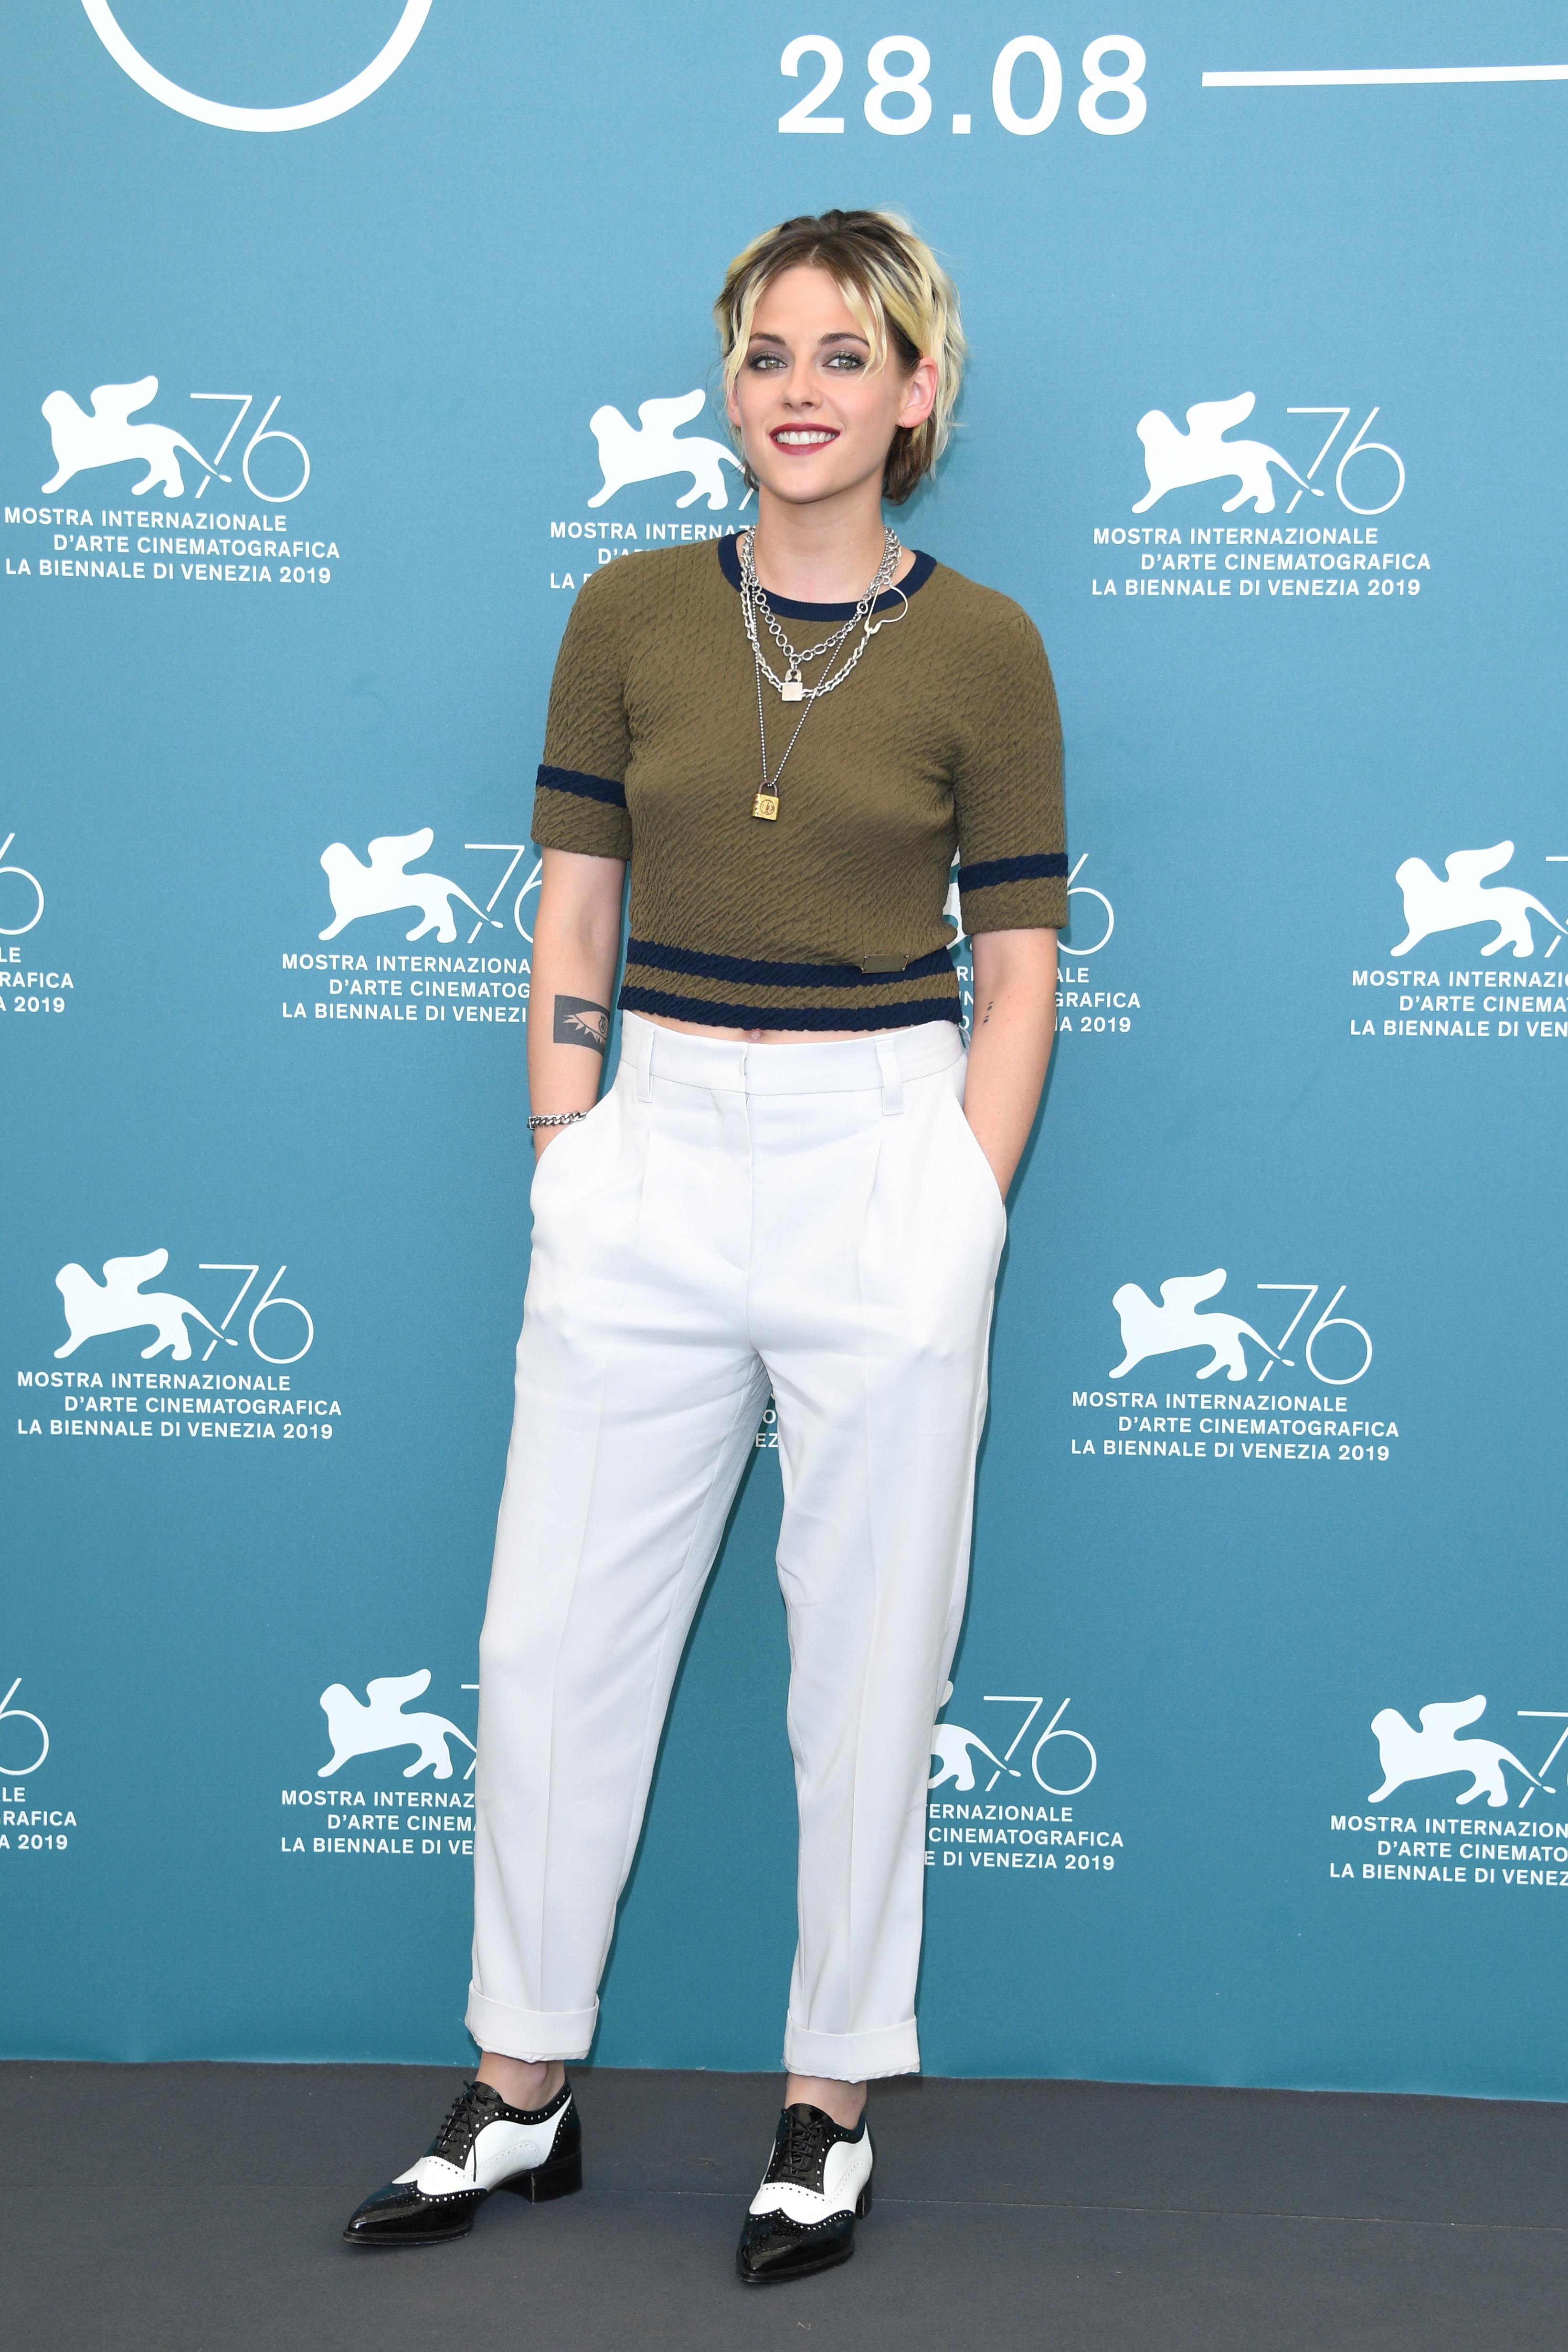 Kristen Stewart was at the film festival in Venice, Italy (picture: Getty Images)